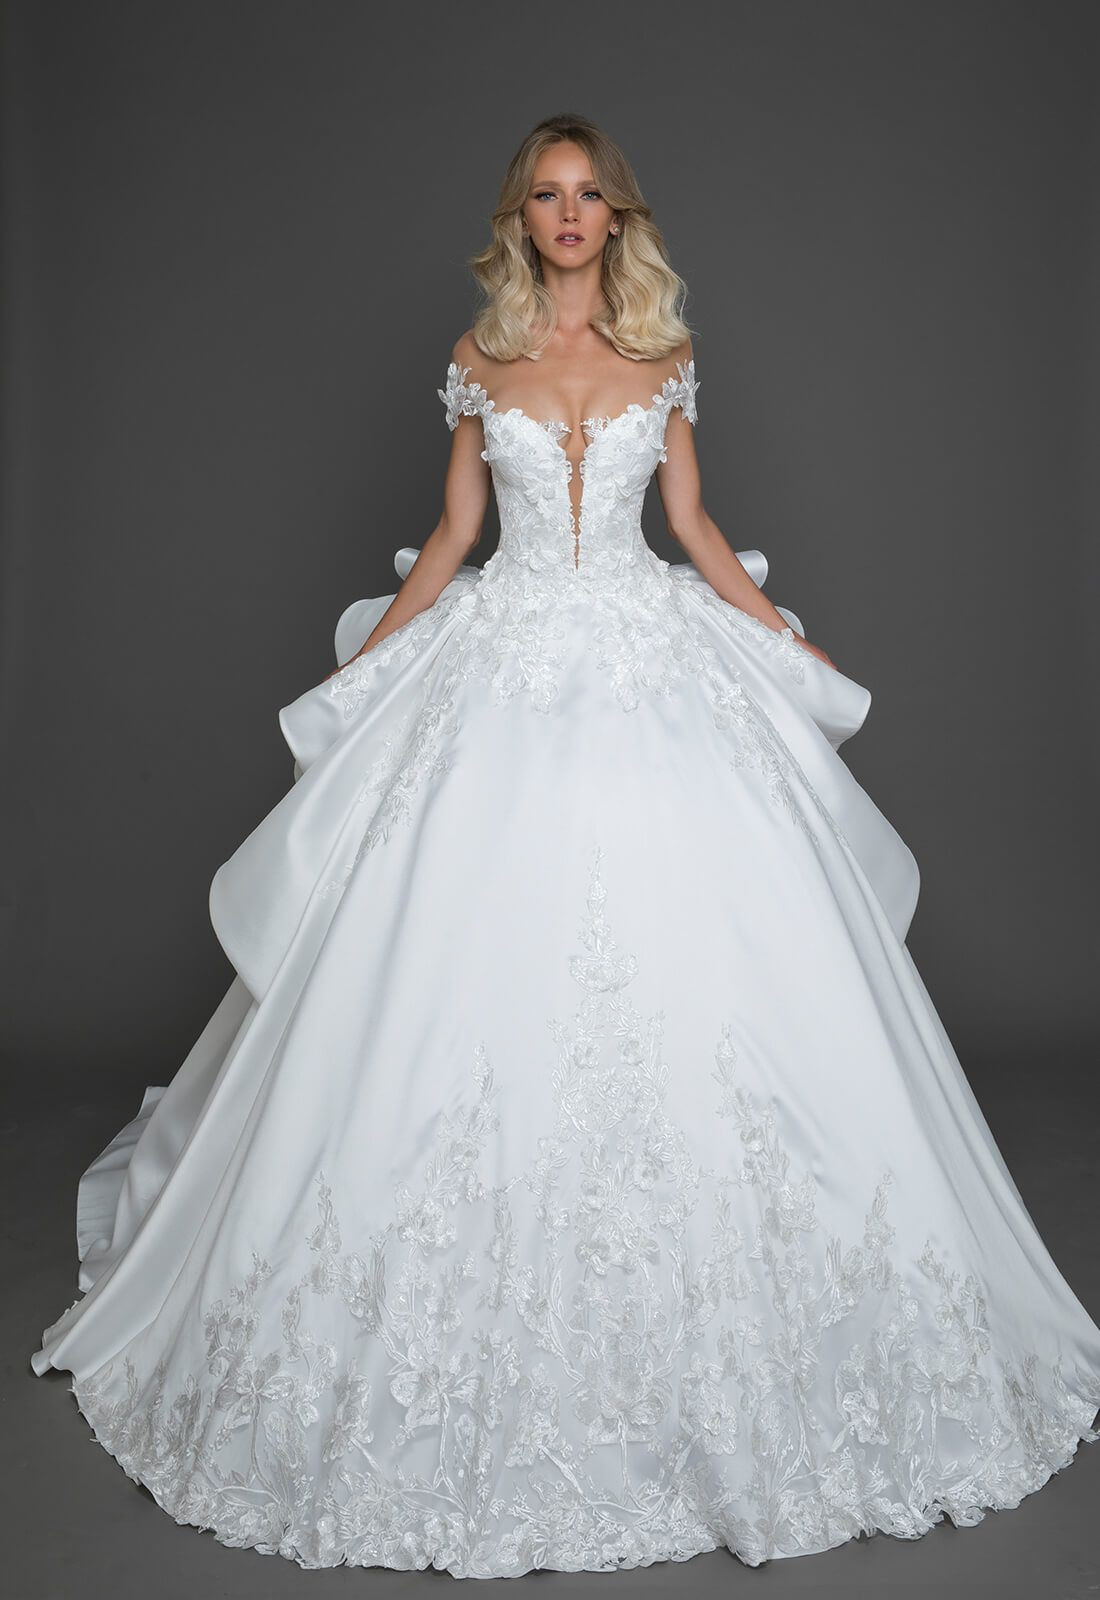 a36f0f8ad4 Ball gown with sheer lace corset bodice